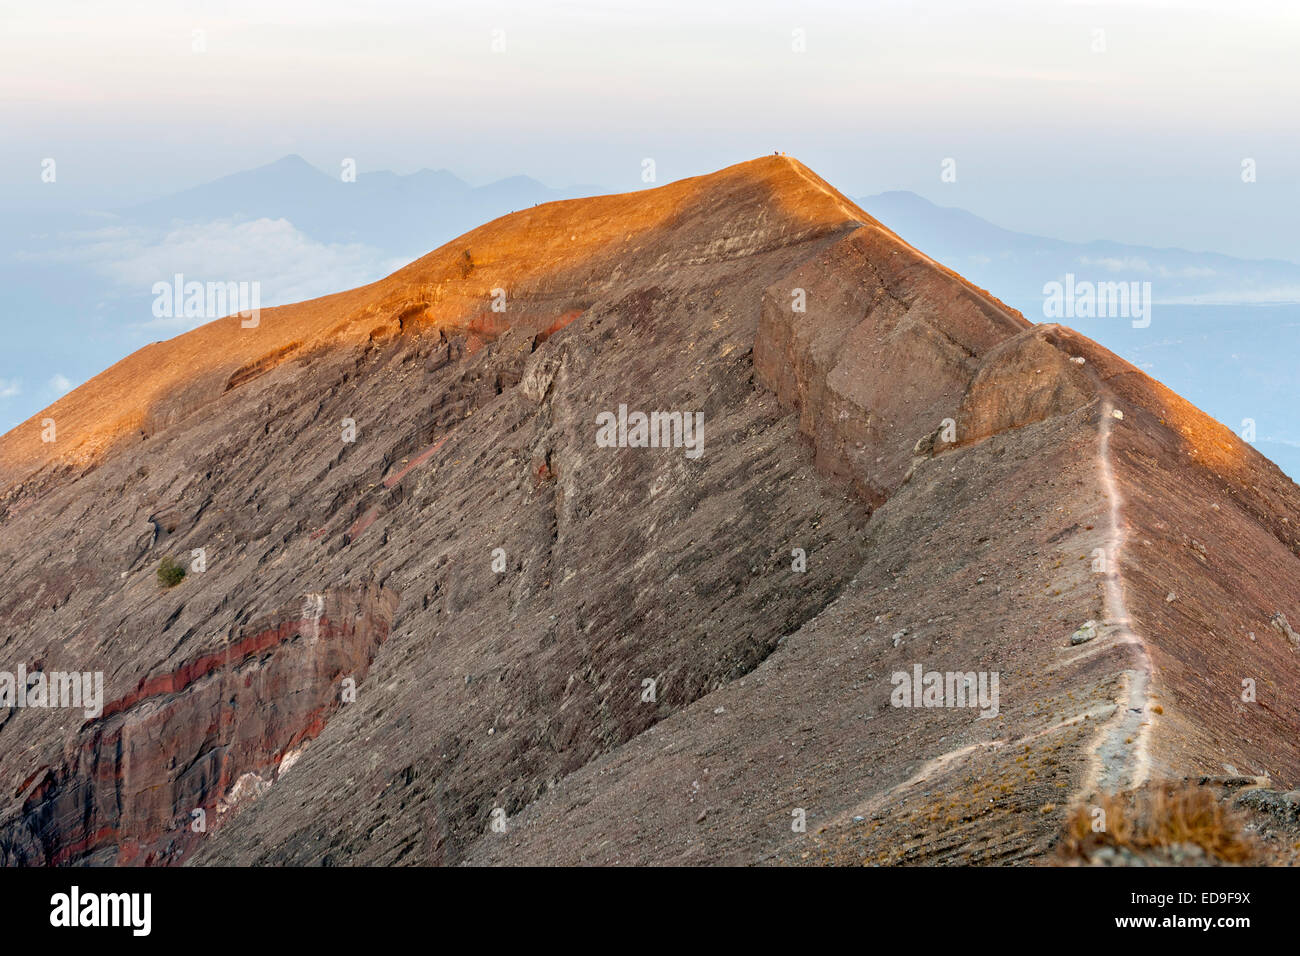 The hiking path on the summit of Gunung Agung (3142m), the highest volcano on the island of Bali, Indonesia. - Stock Image